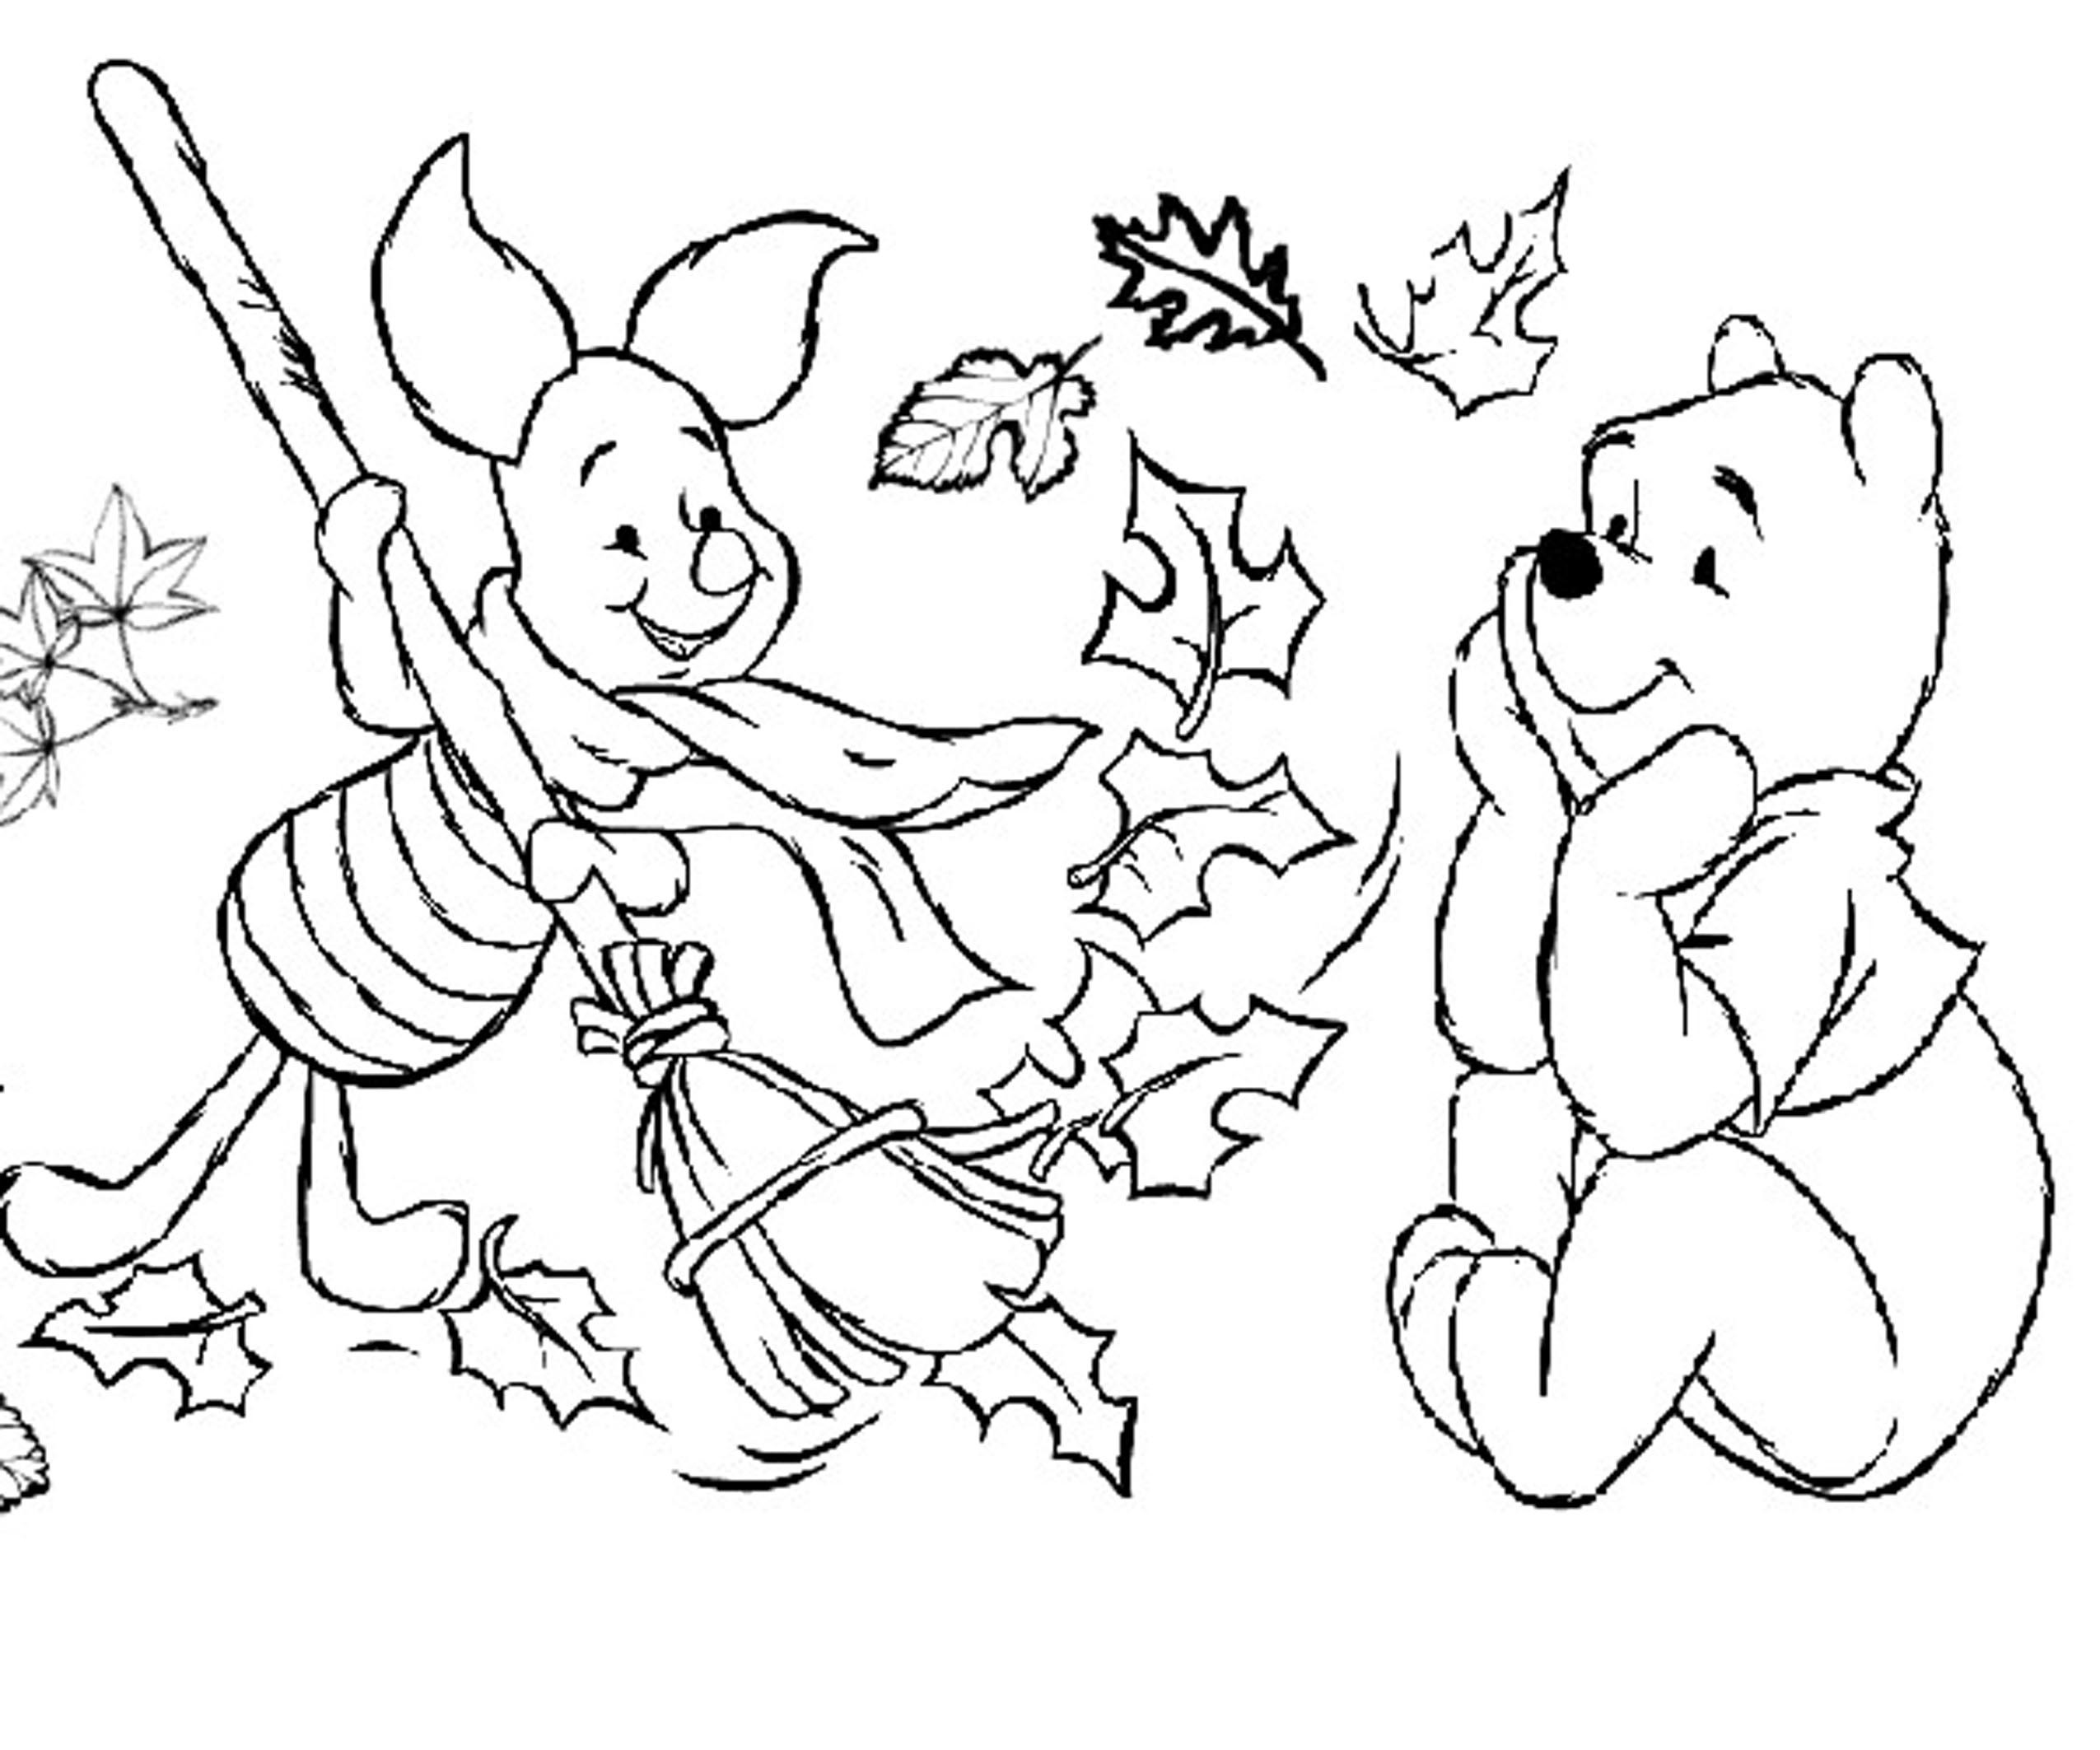 Fall Coloring Sheets Free 5 #6150 - Free Printable Autumn Coloring Sheets